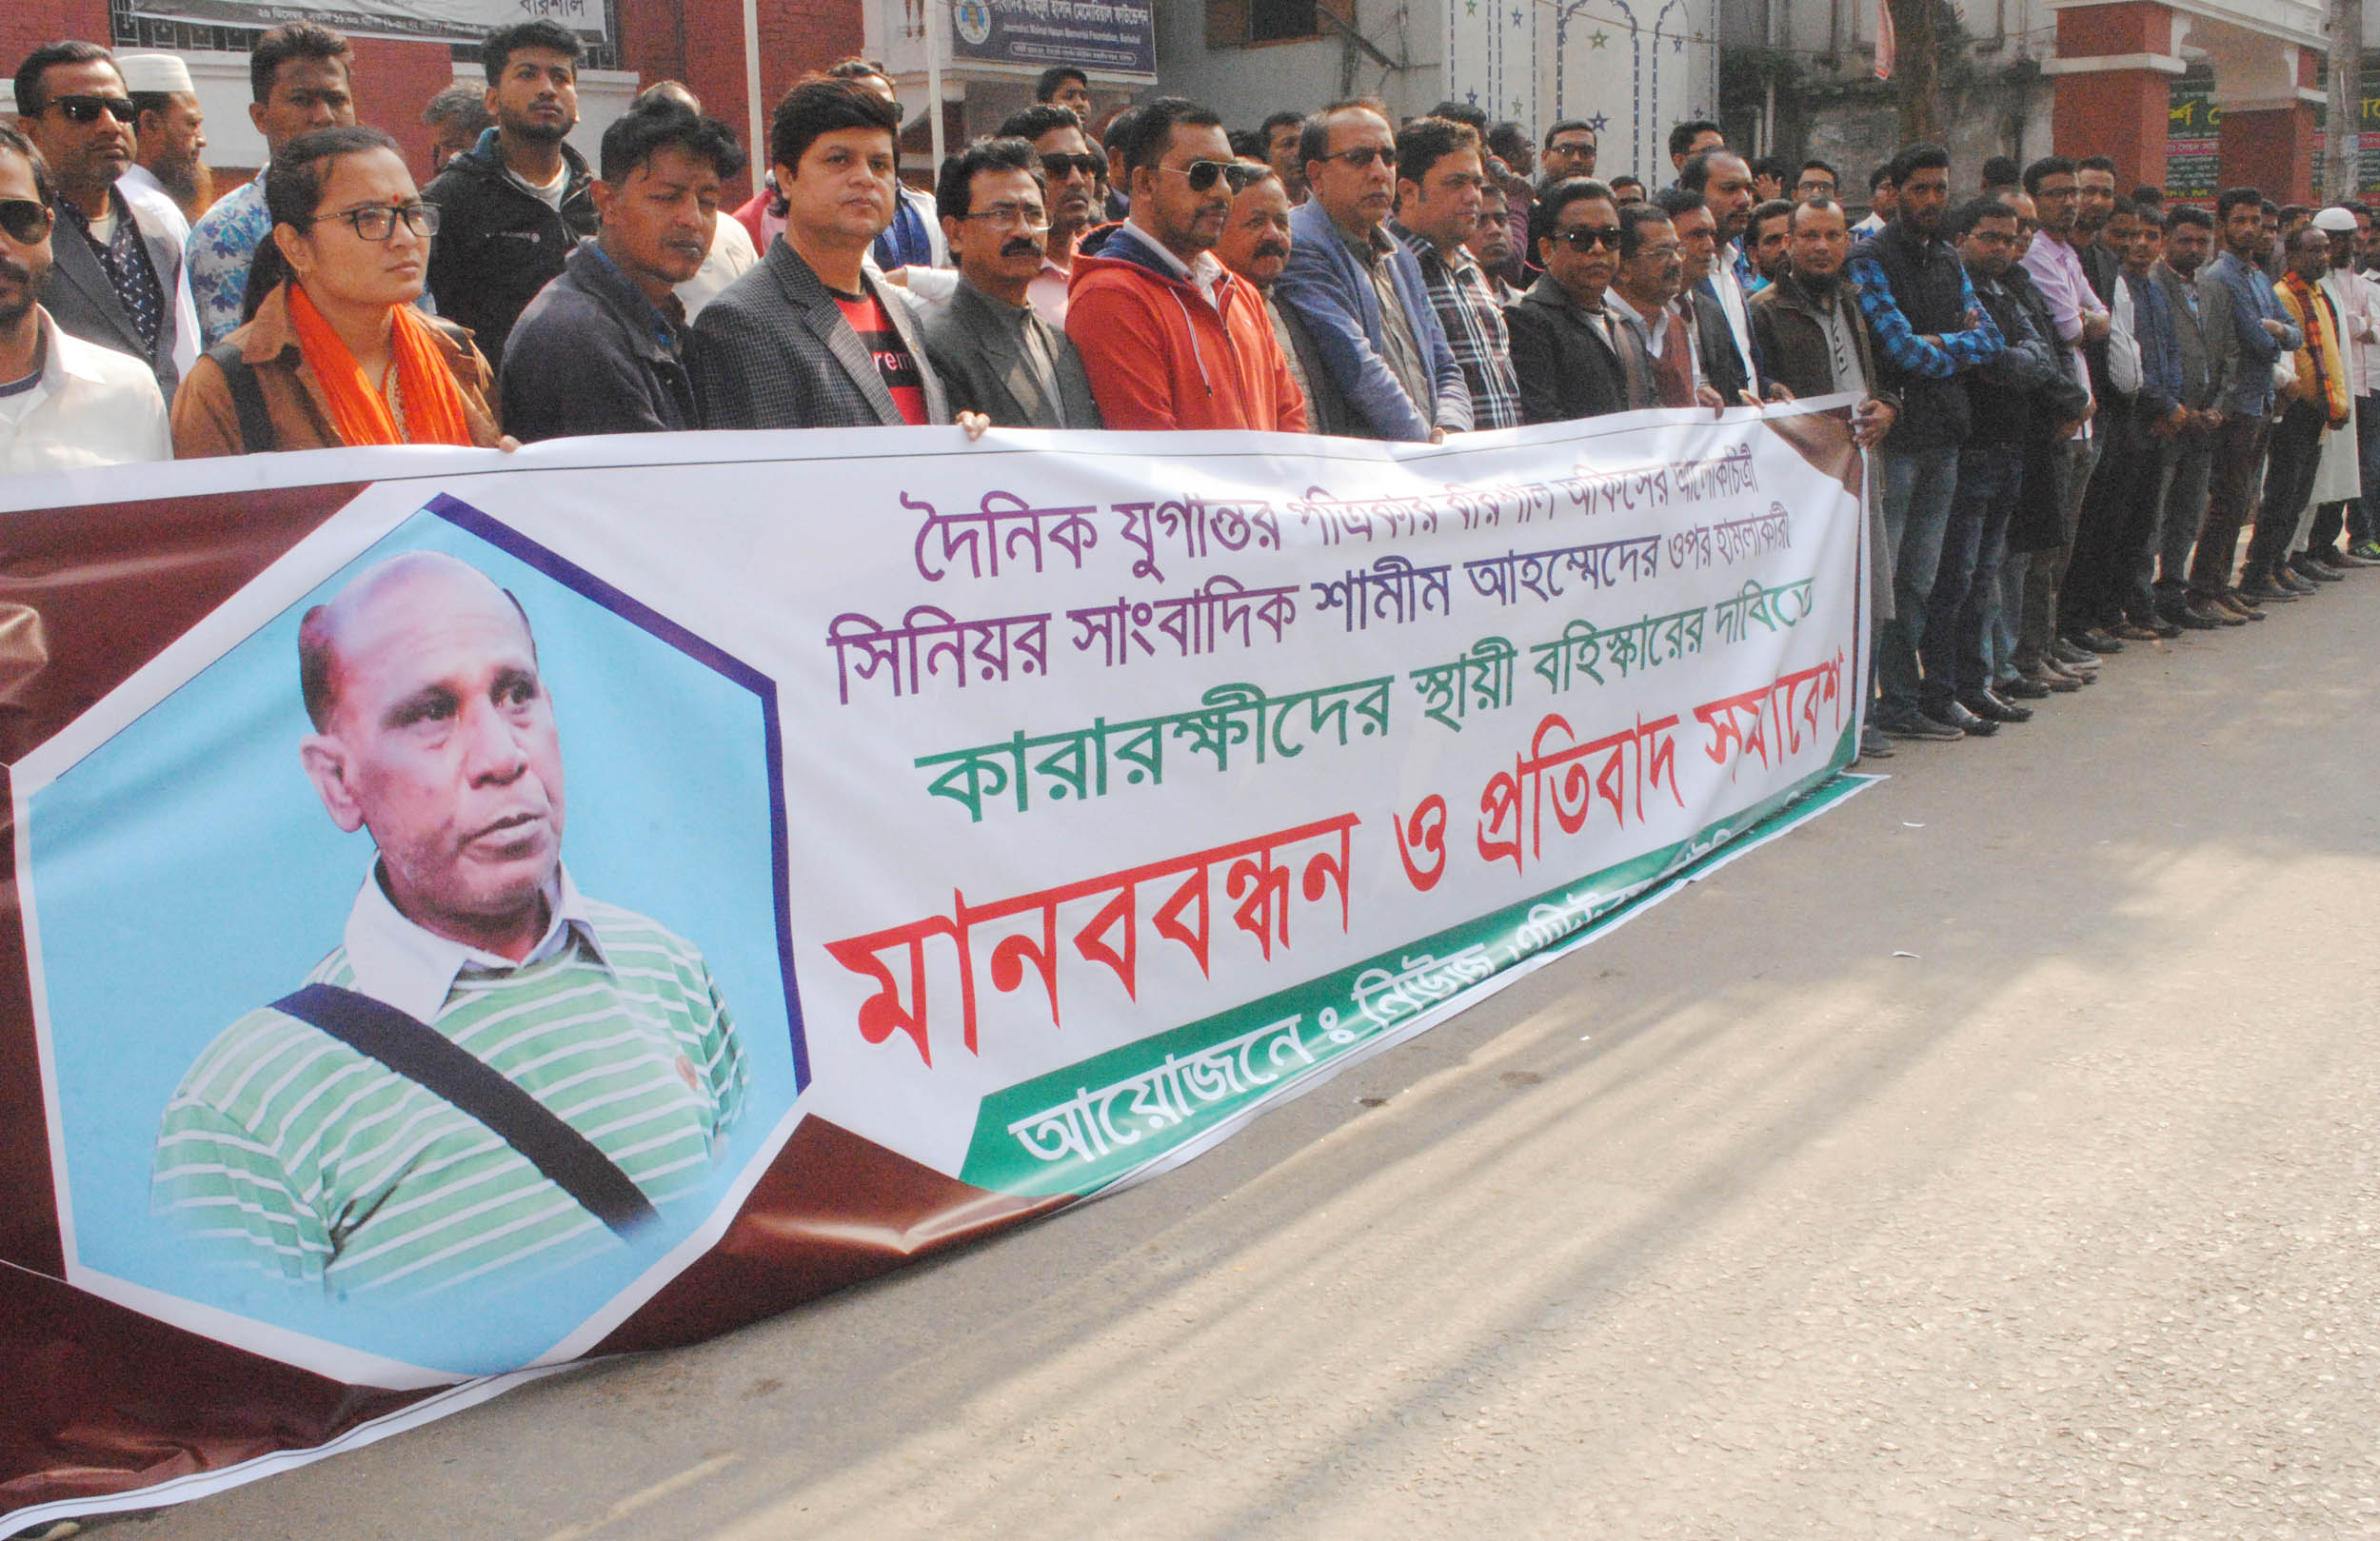 Barishal journalists protest at attack on photojournalist